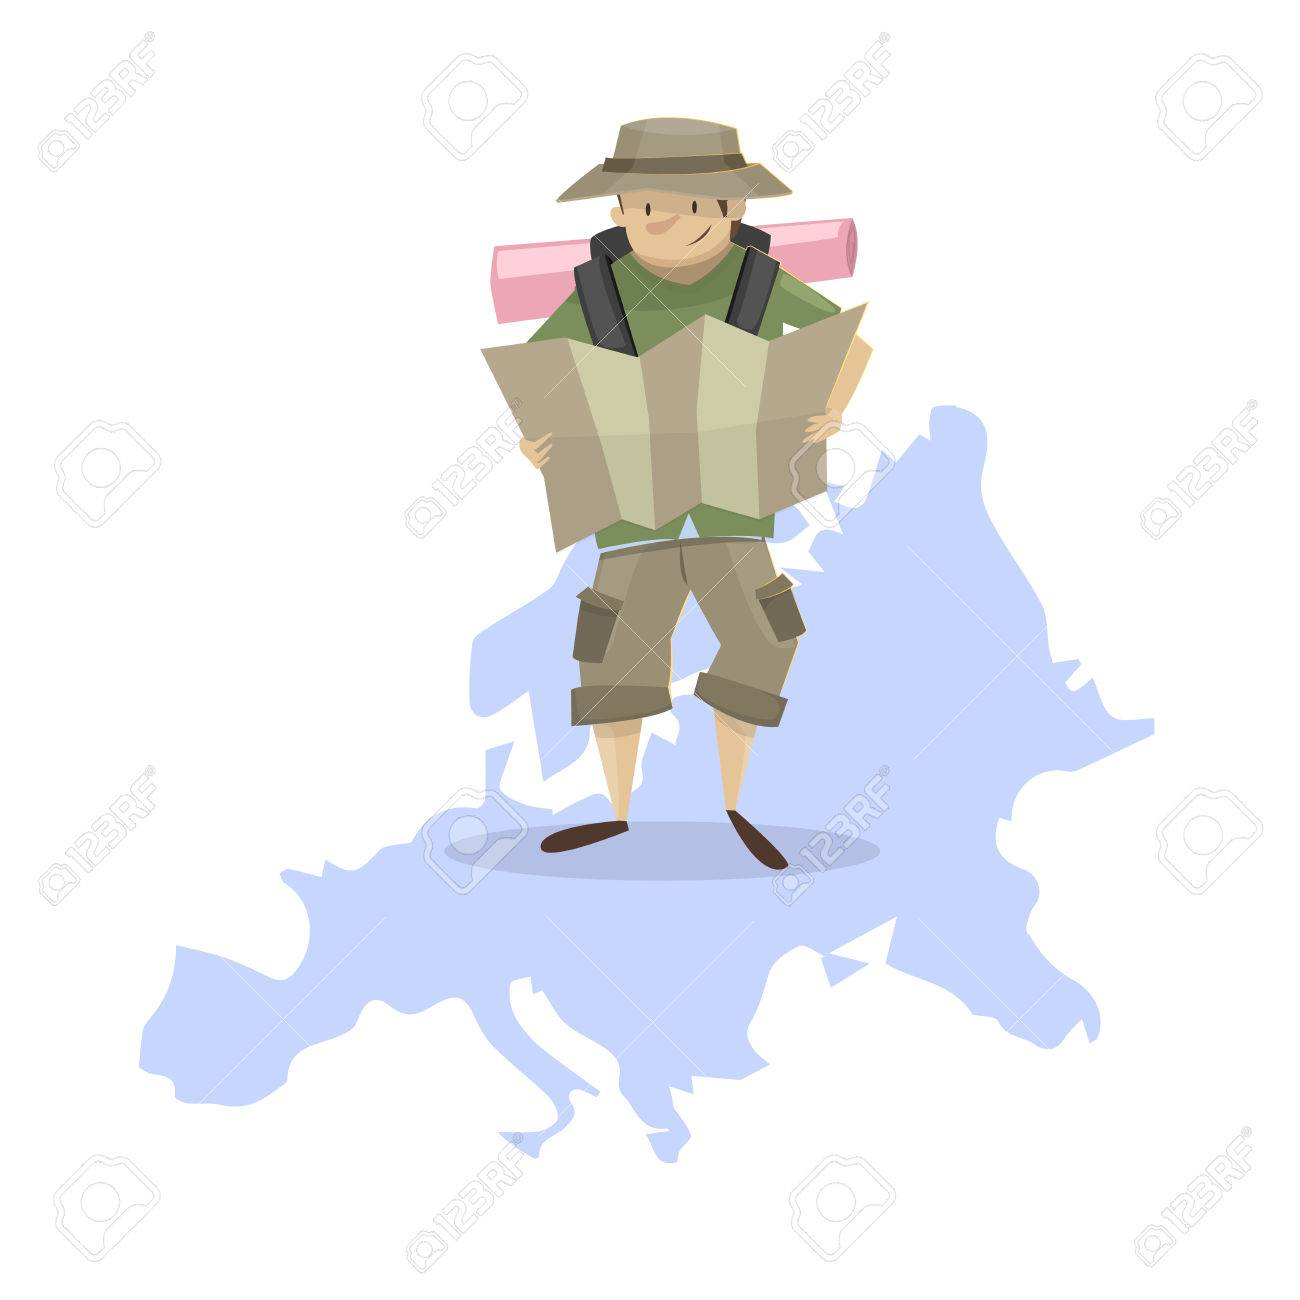 Traveling Backpacking Through Europe Man With Backpack On The